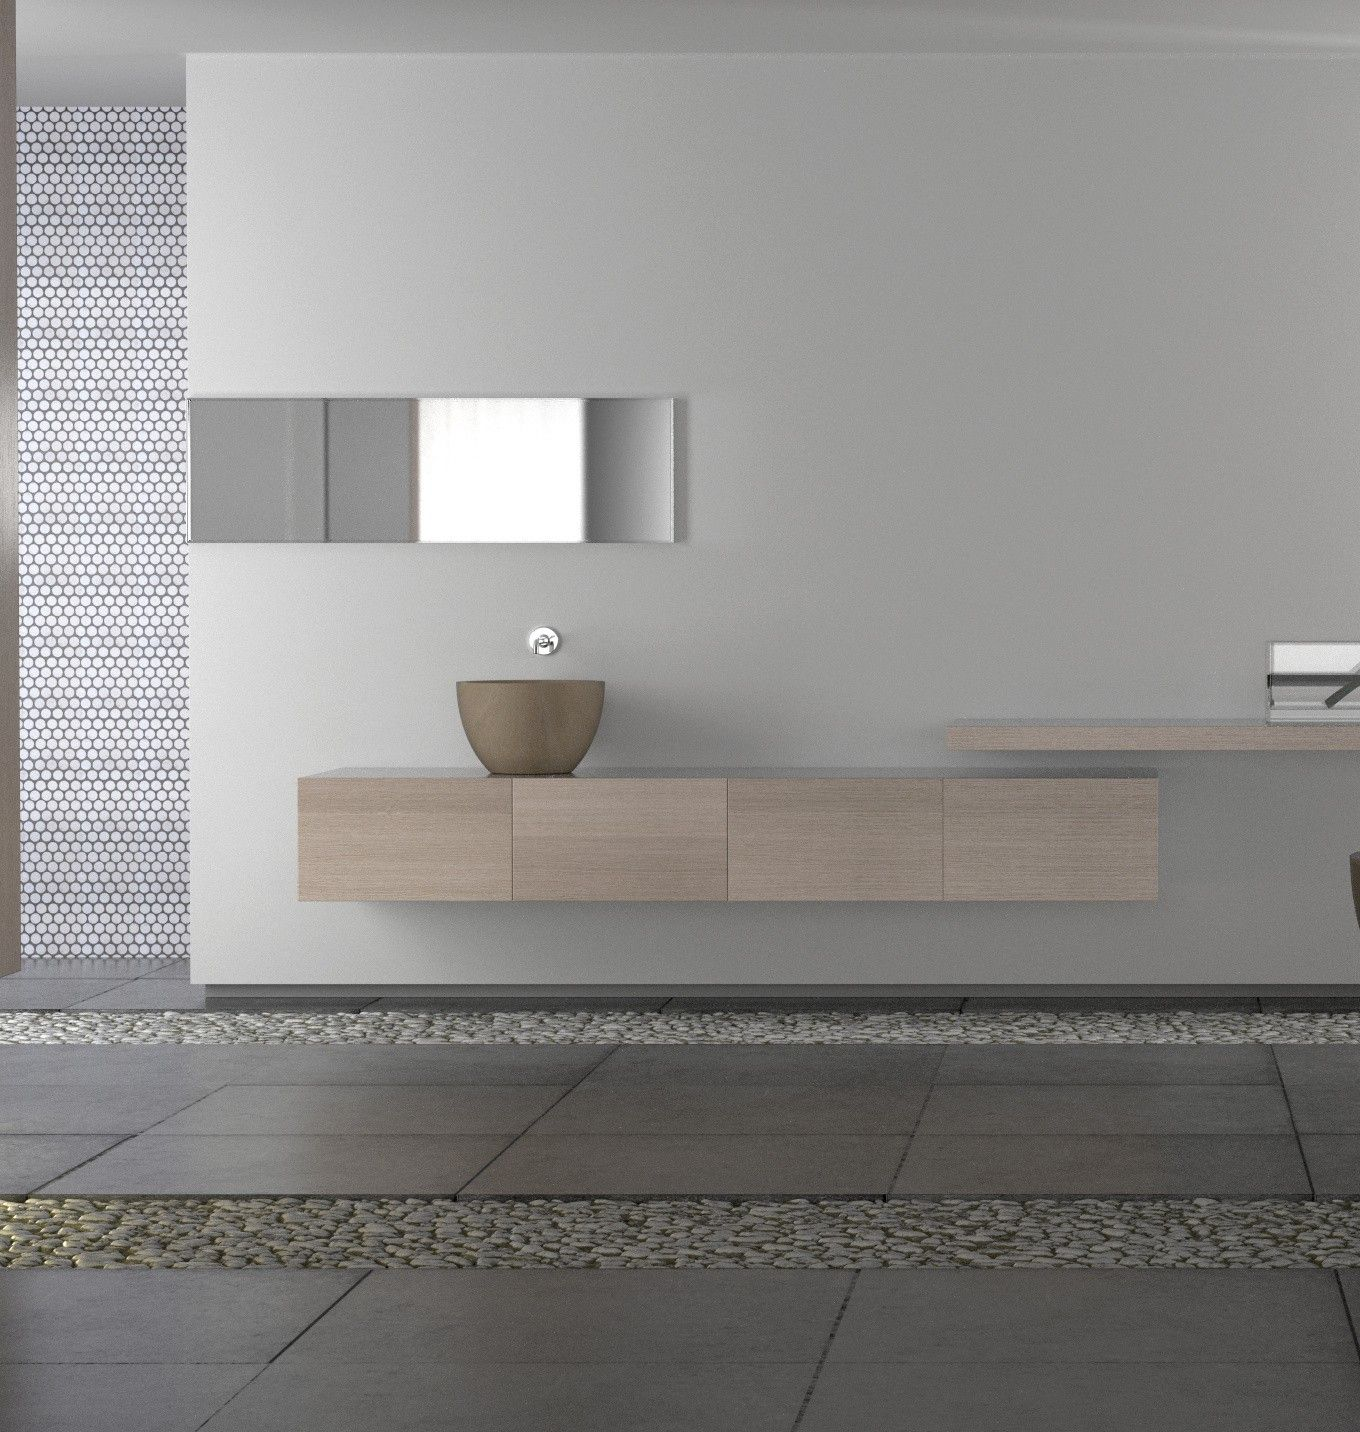 A modern minimal bathroom. The designers are not identified on the site.